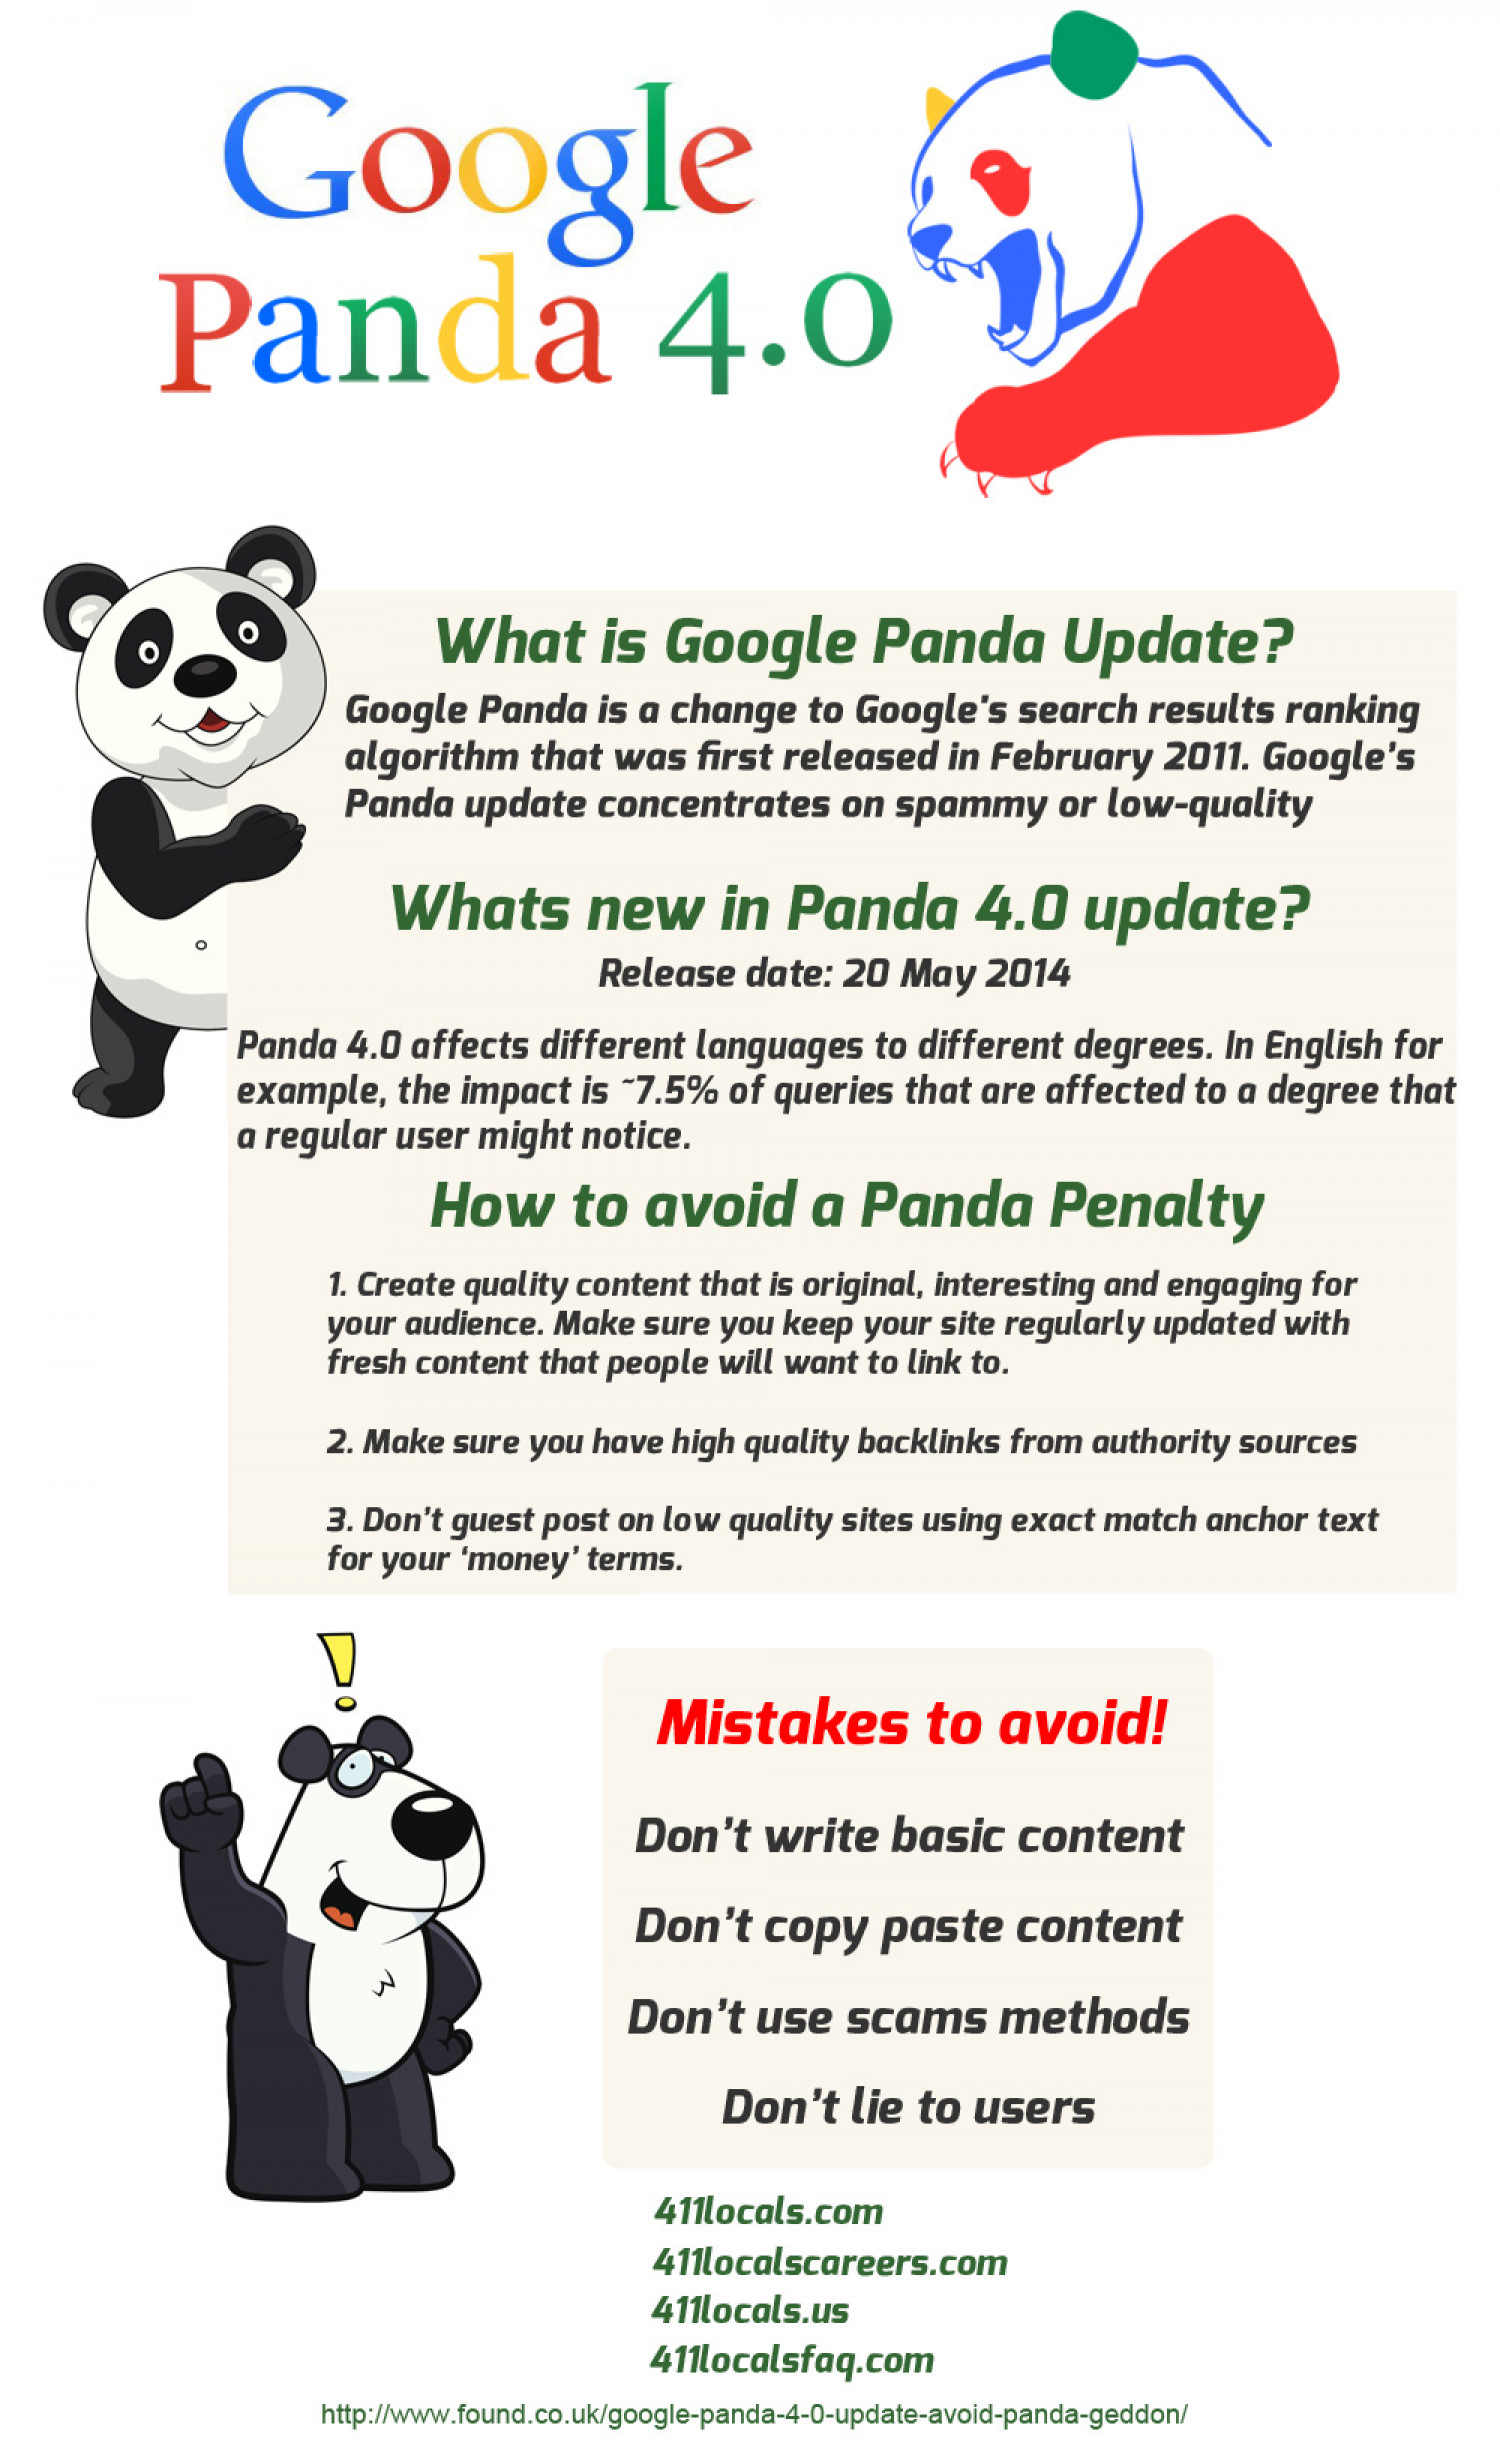 Google Panda Update 4.0  Infographic